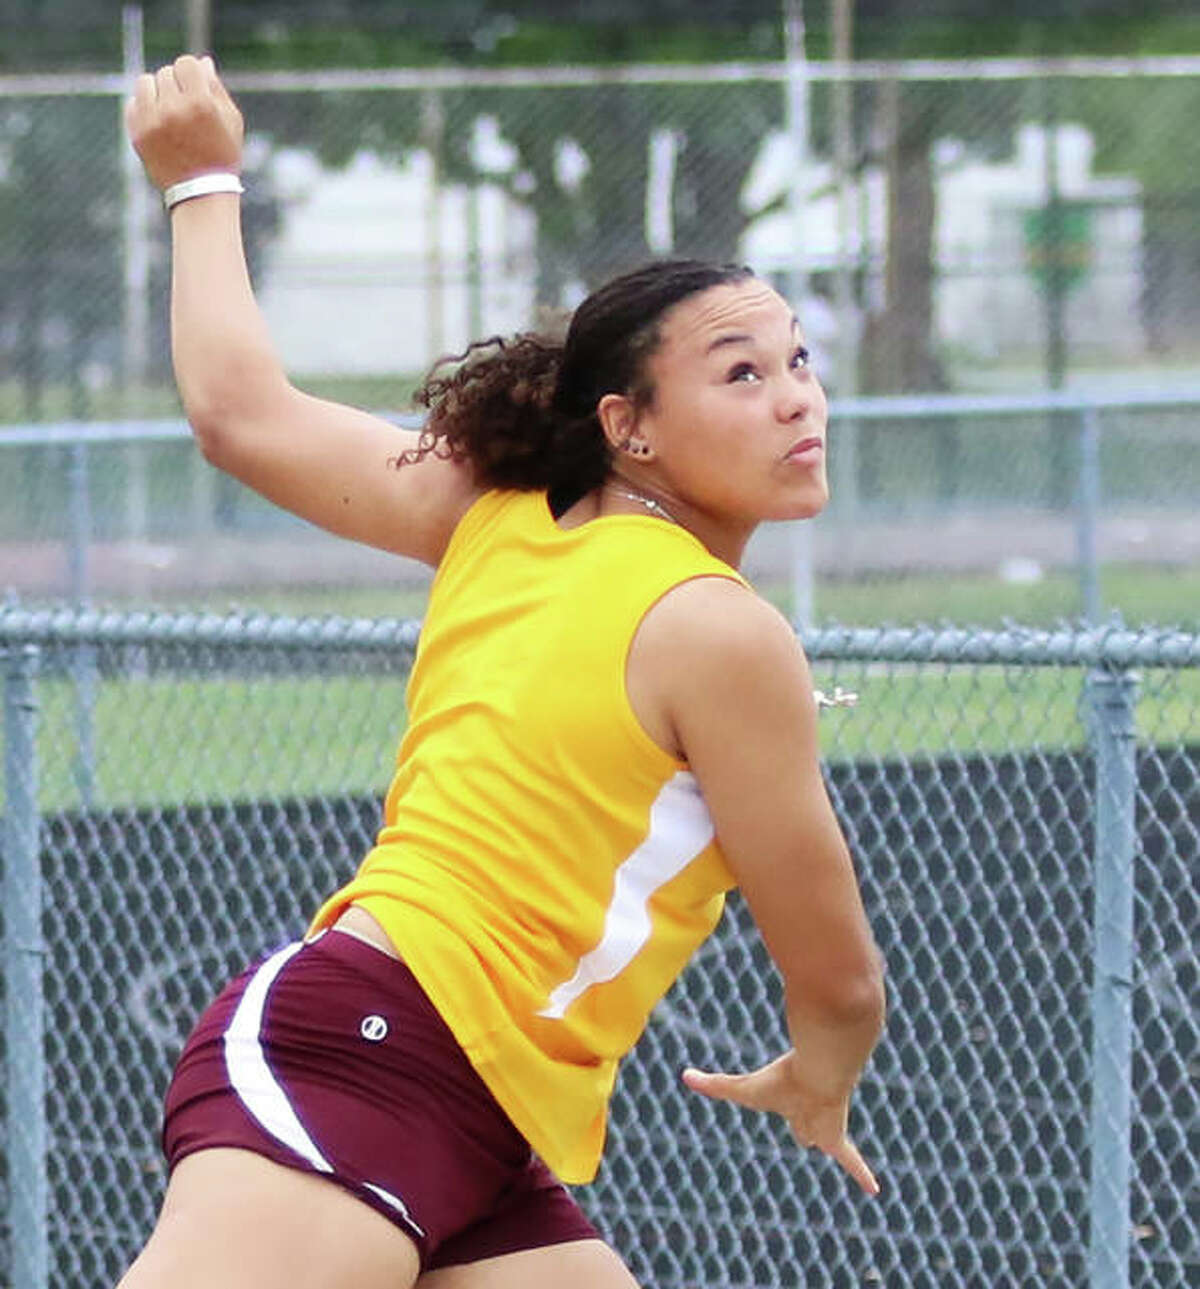 EA-WR's Jayden Ulrich watches her throw in the shot put during the Class 2A sectional girls track and field meet as a sophomore in May 2019 at Springfield. Ulrich, who won that sectional and went on to win a state championship in the shot, is now a senior and Wednesday signed a Division I letter-of-intent with Indiana.